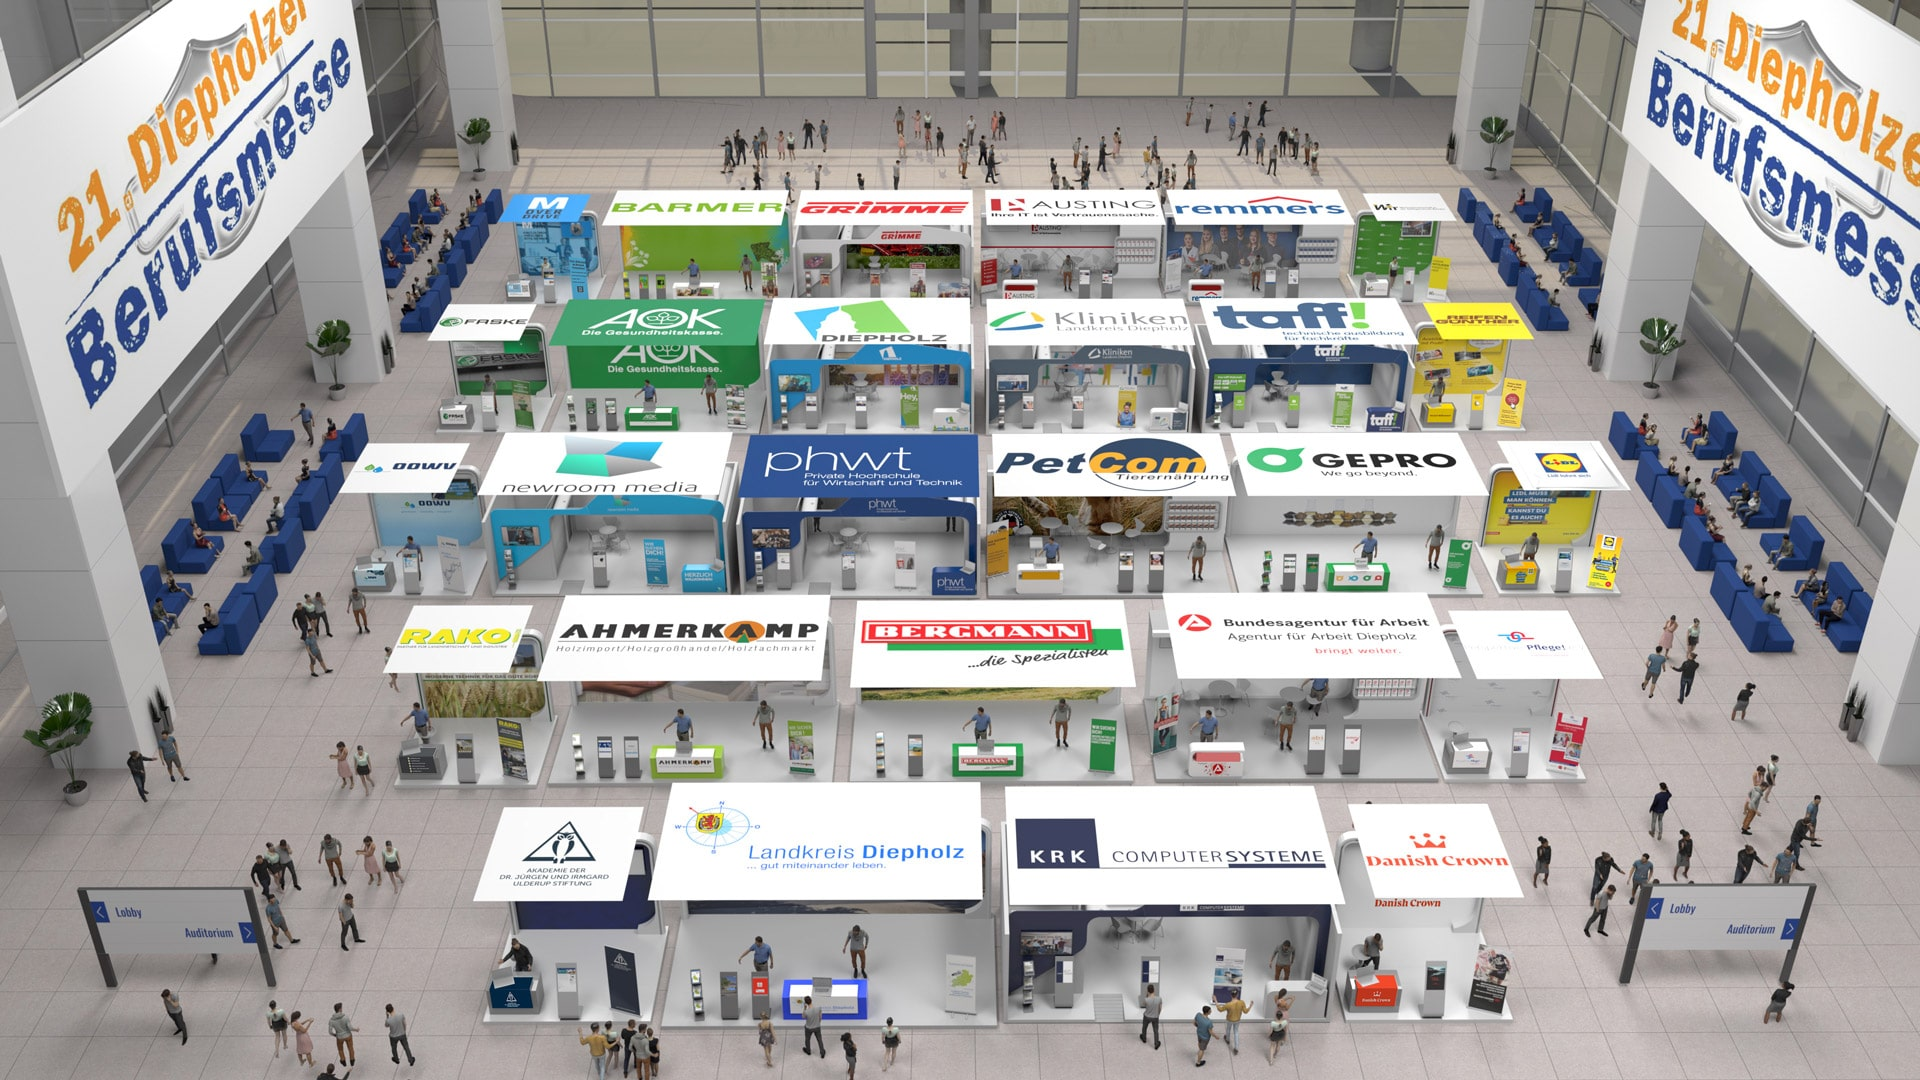 Exhibition hall of the 21st Diepholz job fair